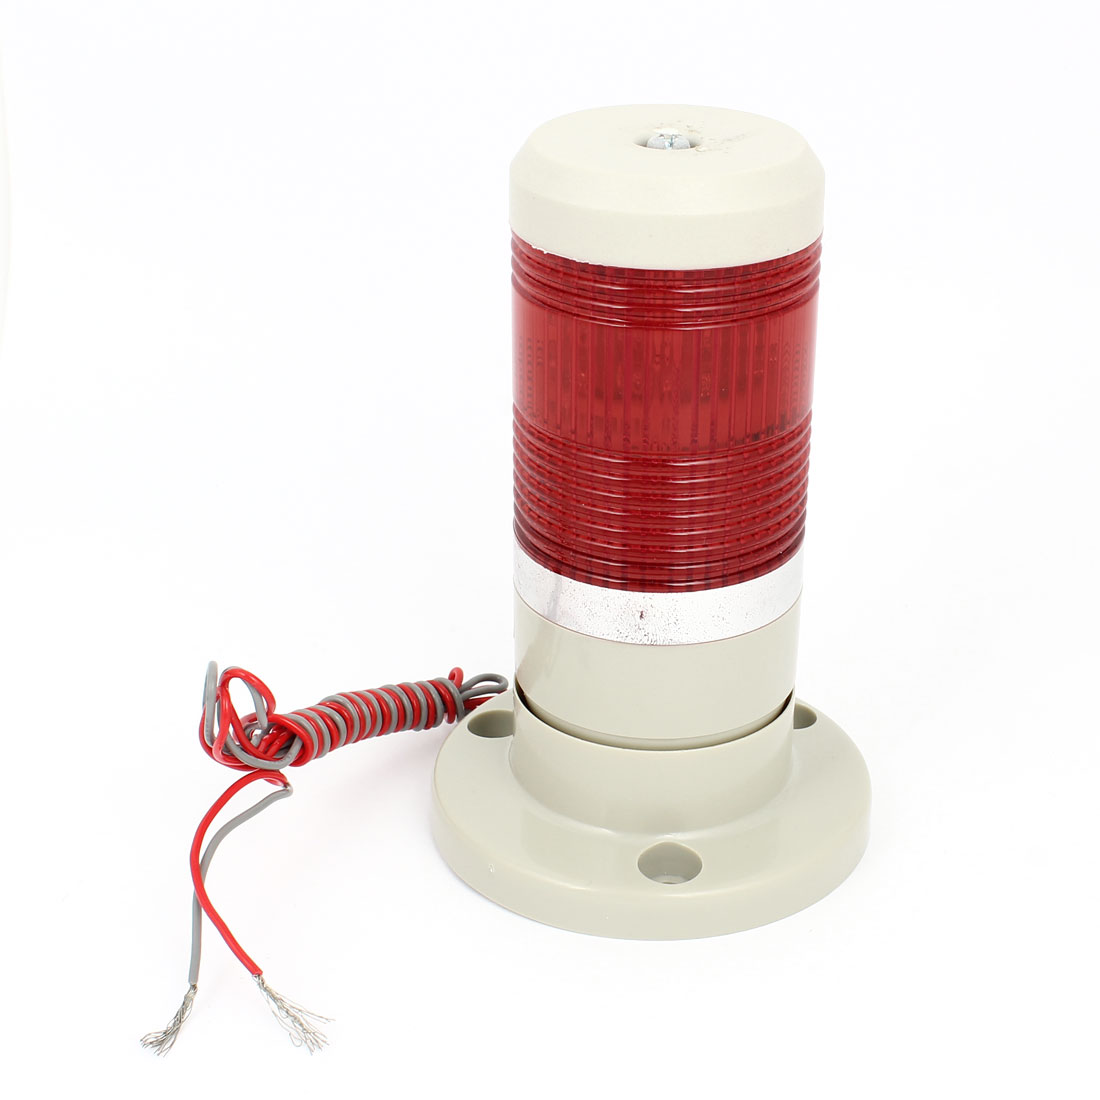 Red Industrial Signal Tower Safety Stack Alarm Light Bulb AC 220V